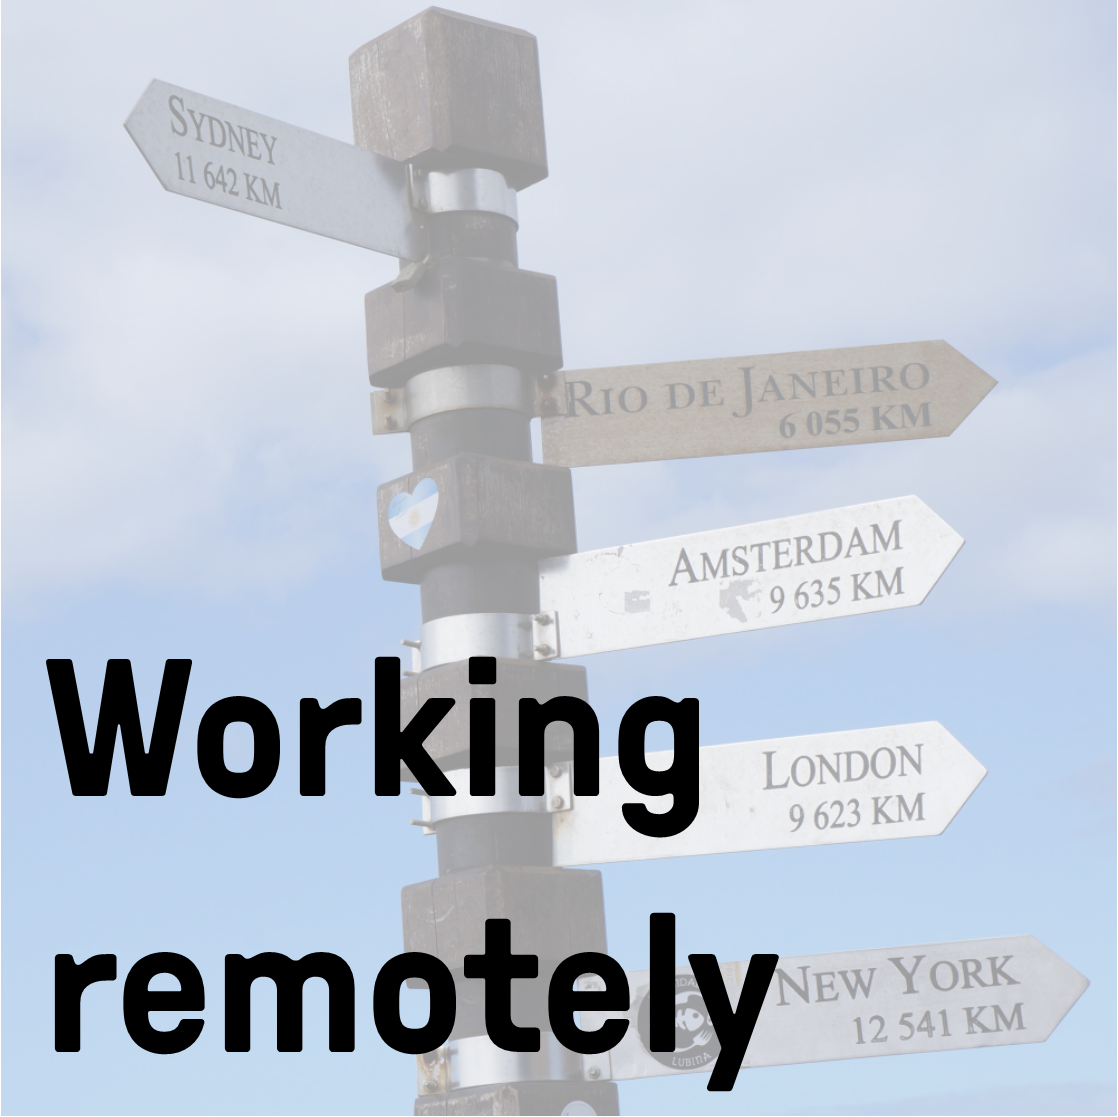 Working remotely image